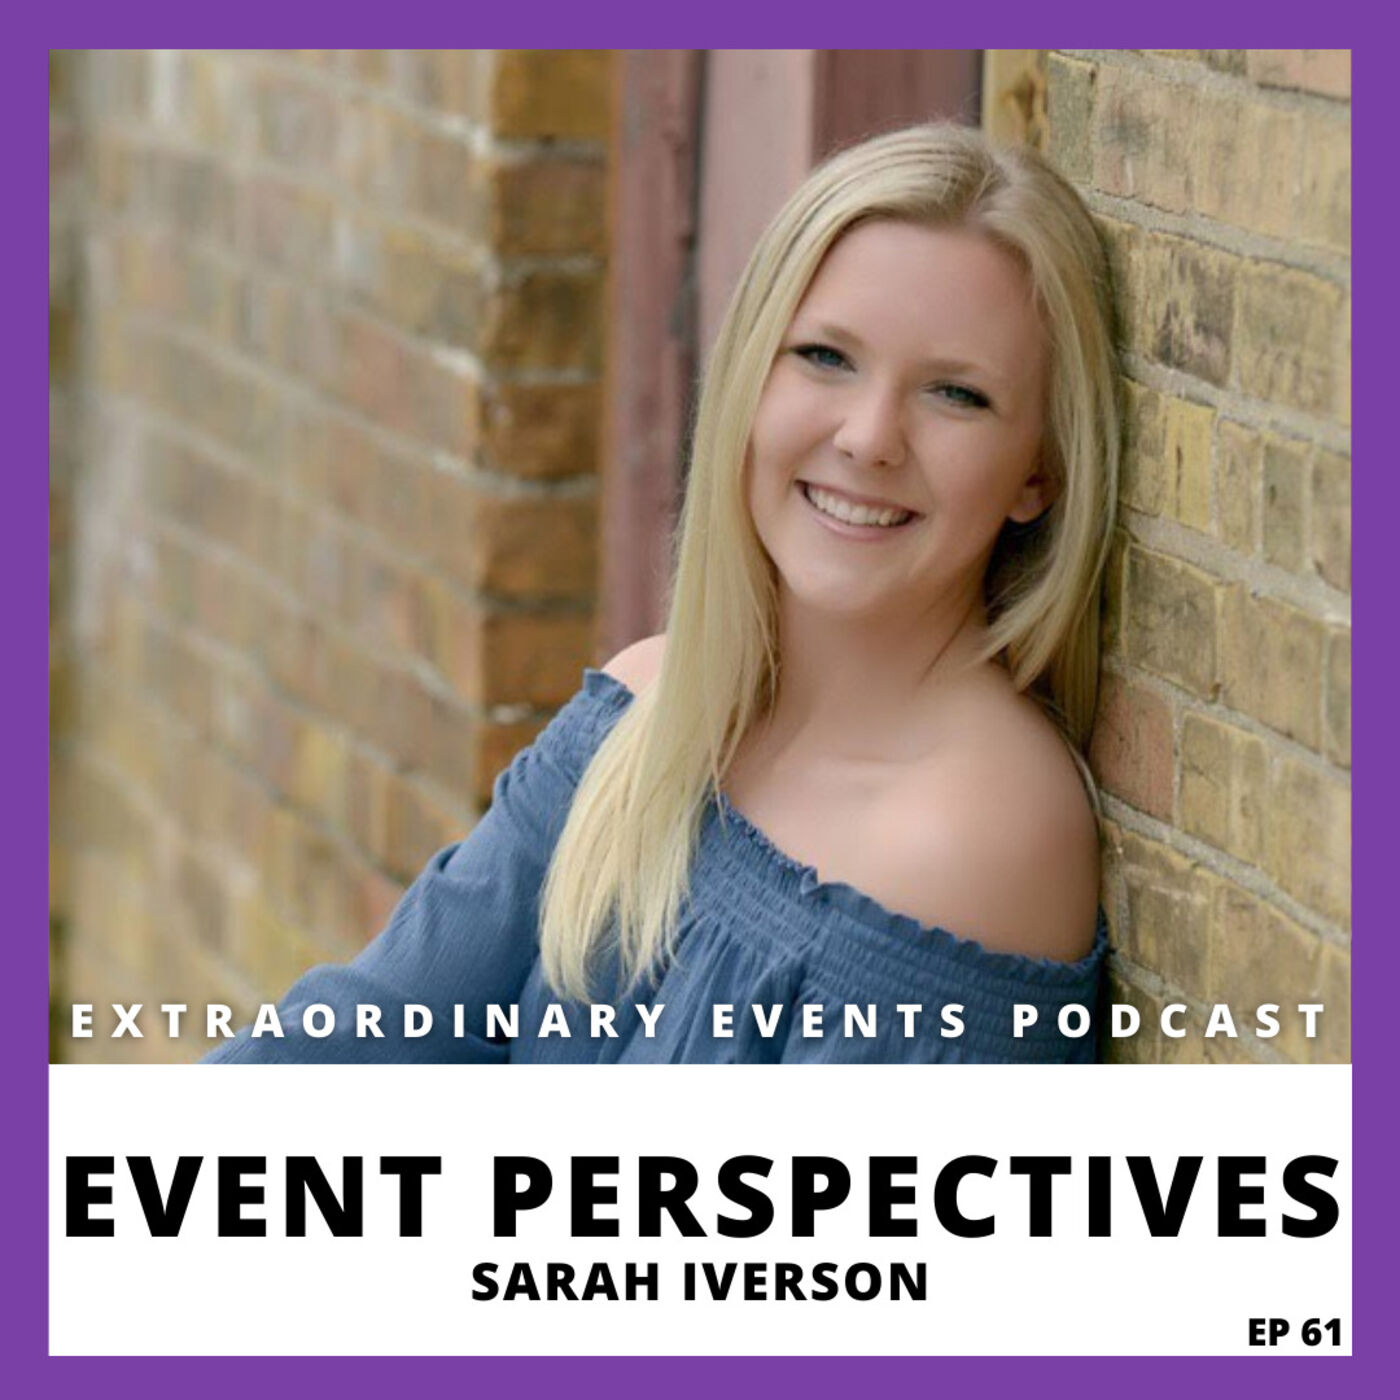 Ep 61: Event Perspectives with Sarah Iverson